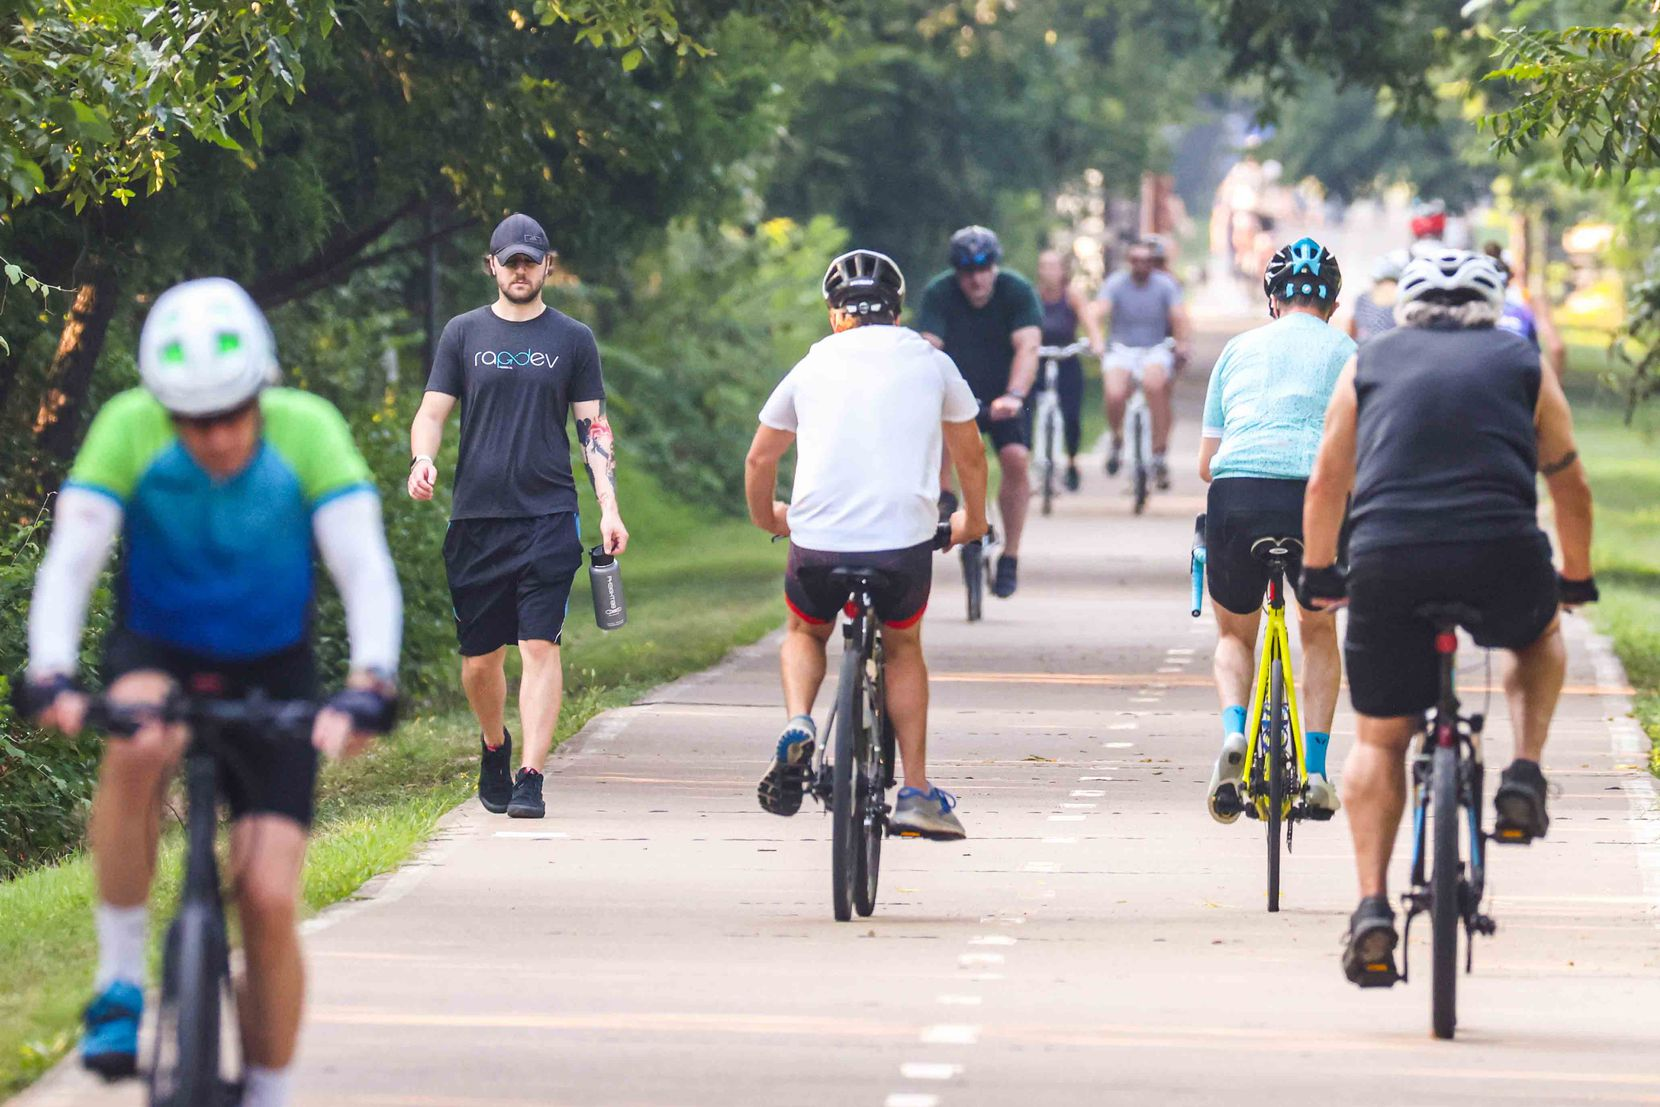 The swarm of people walking and riding bikes at White Rock Lake in Dallas on Wednesday included almost no one in masks.